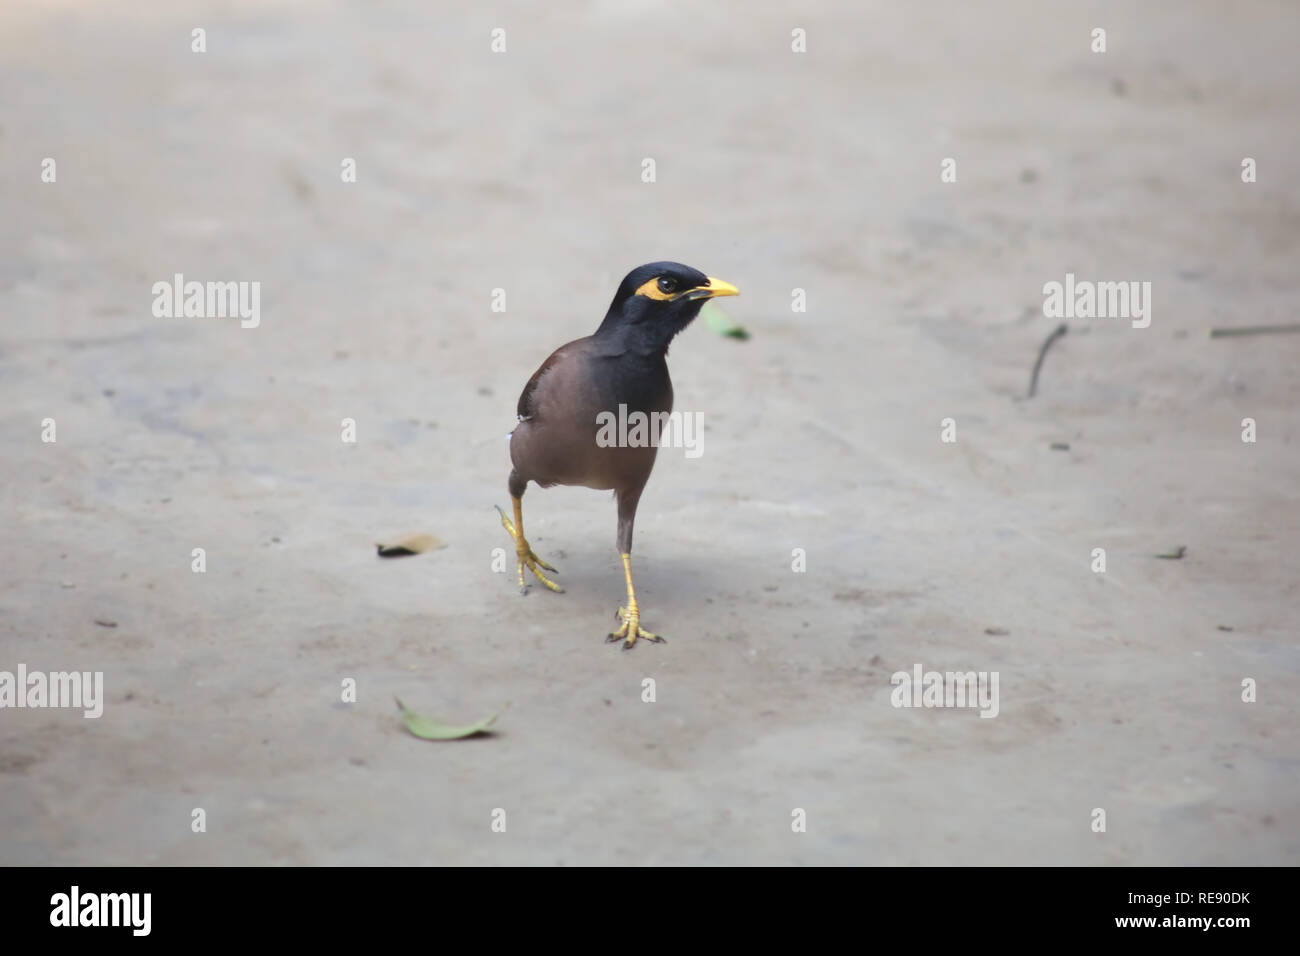 Indian Common Myna - Acridotheres tristis in Soil Front View - Stock Image